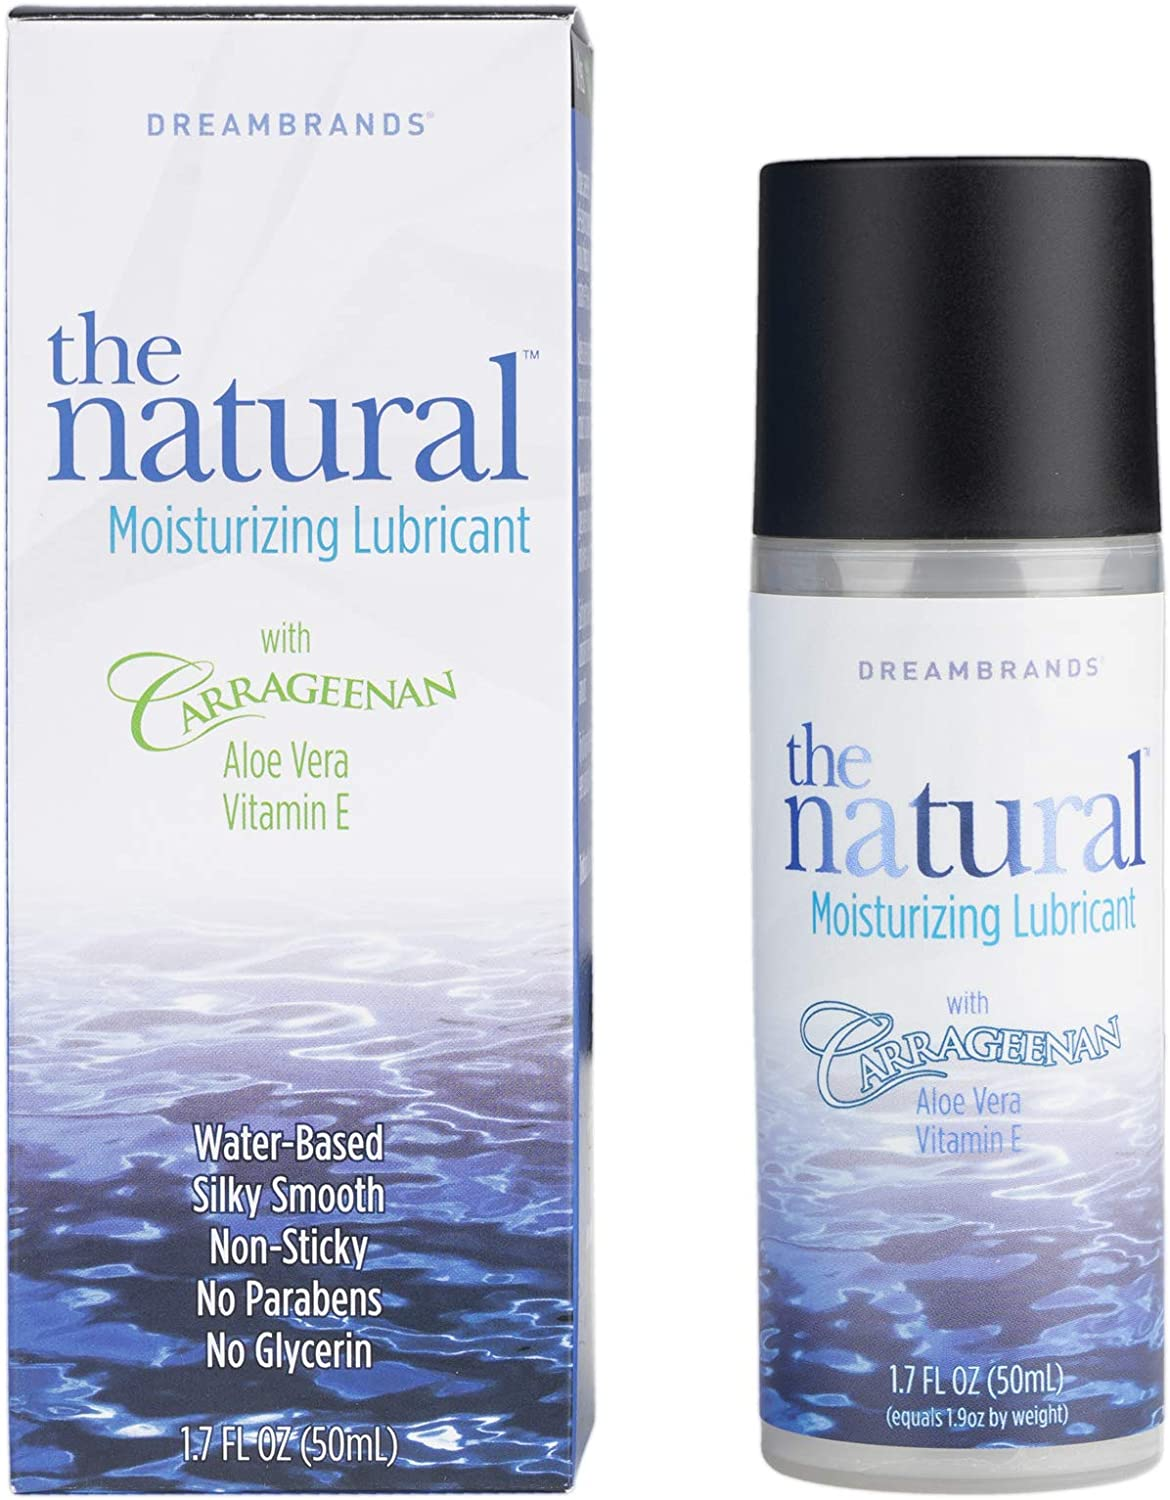 The Natural, Carrageenan Water-Based Lube, Personal Lubricant with Vitamin E and Aloe Vera - 1.7 fl oz - DreamBrands